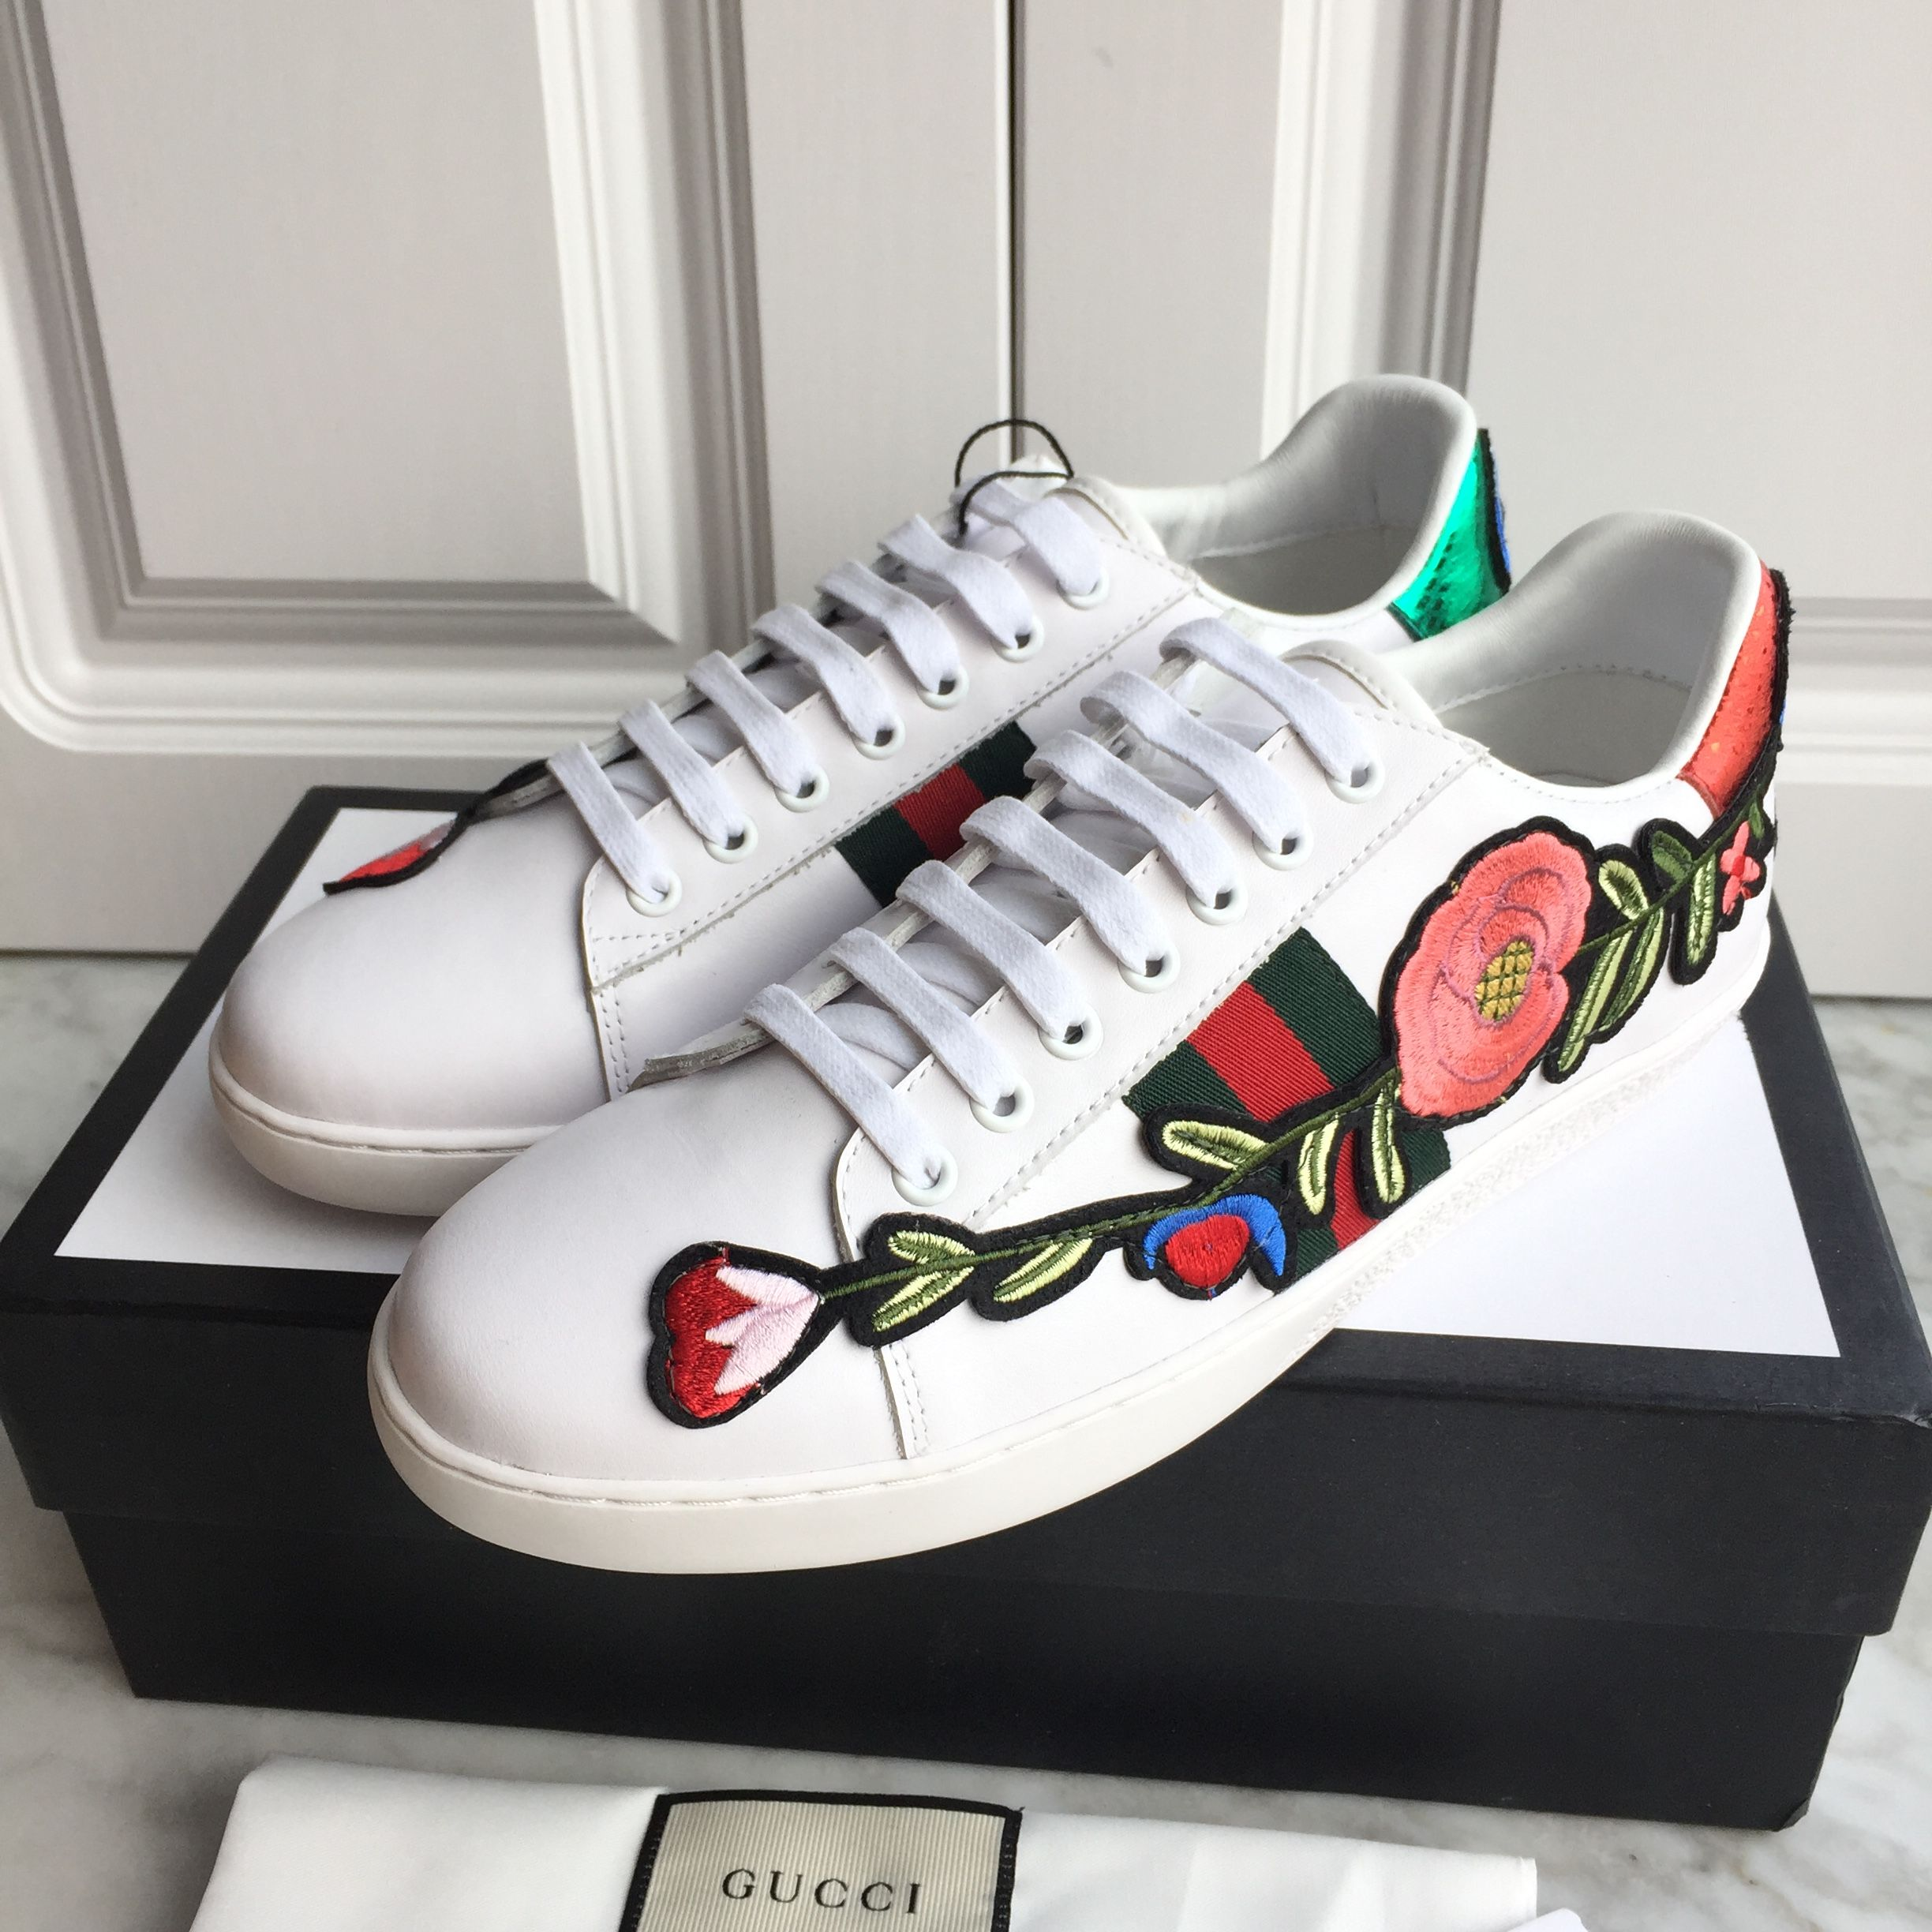 Leather sneakers, Sneakers, White shoes